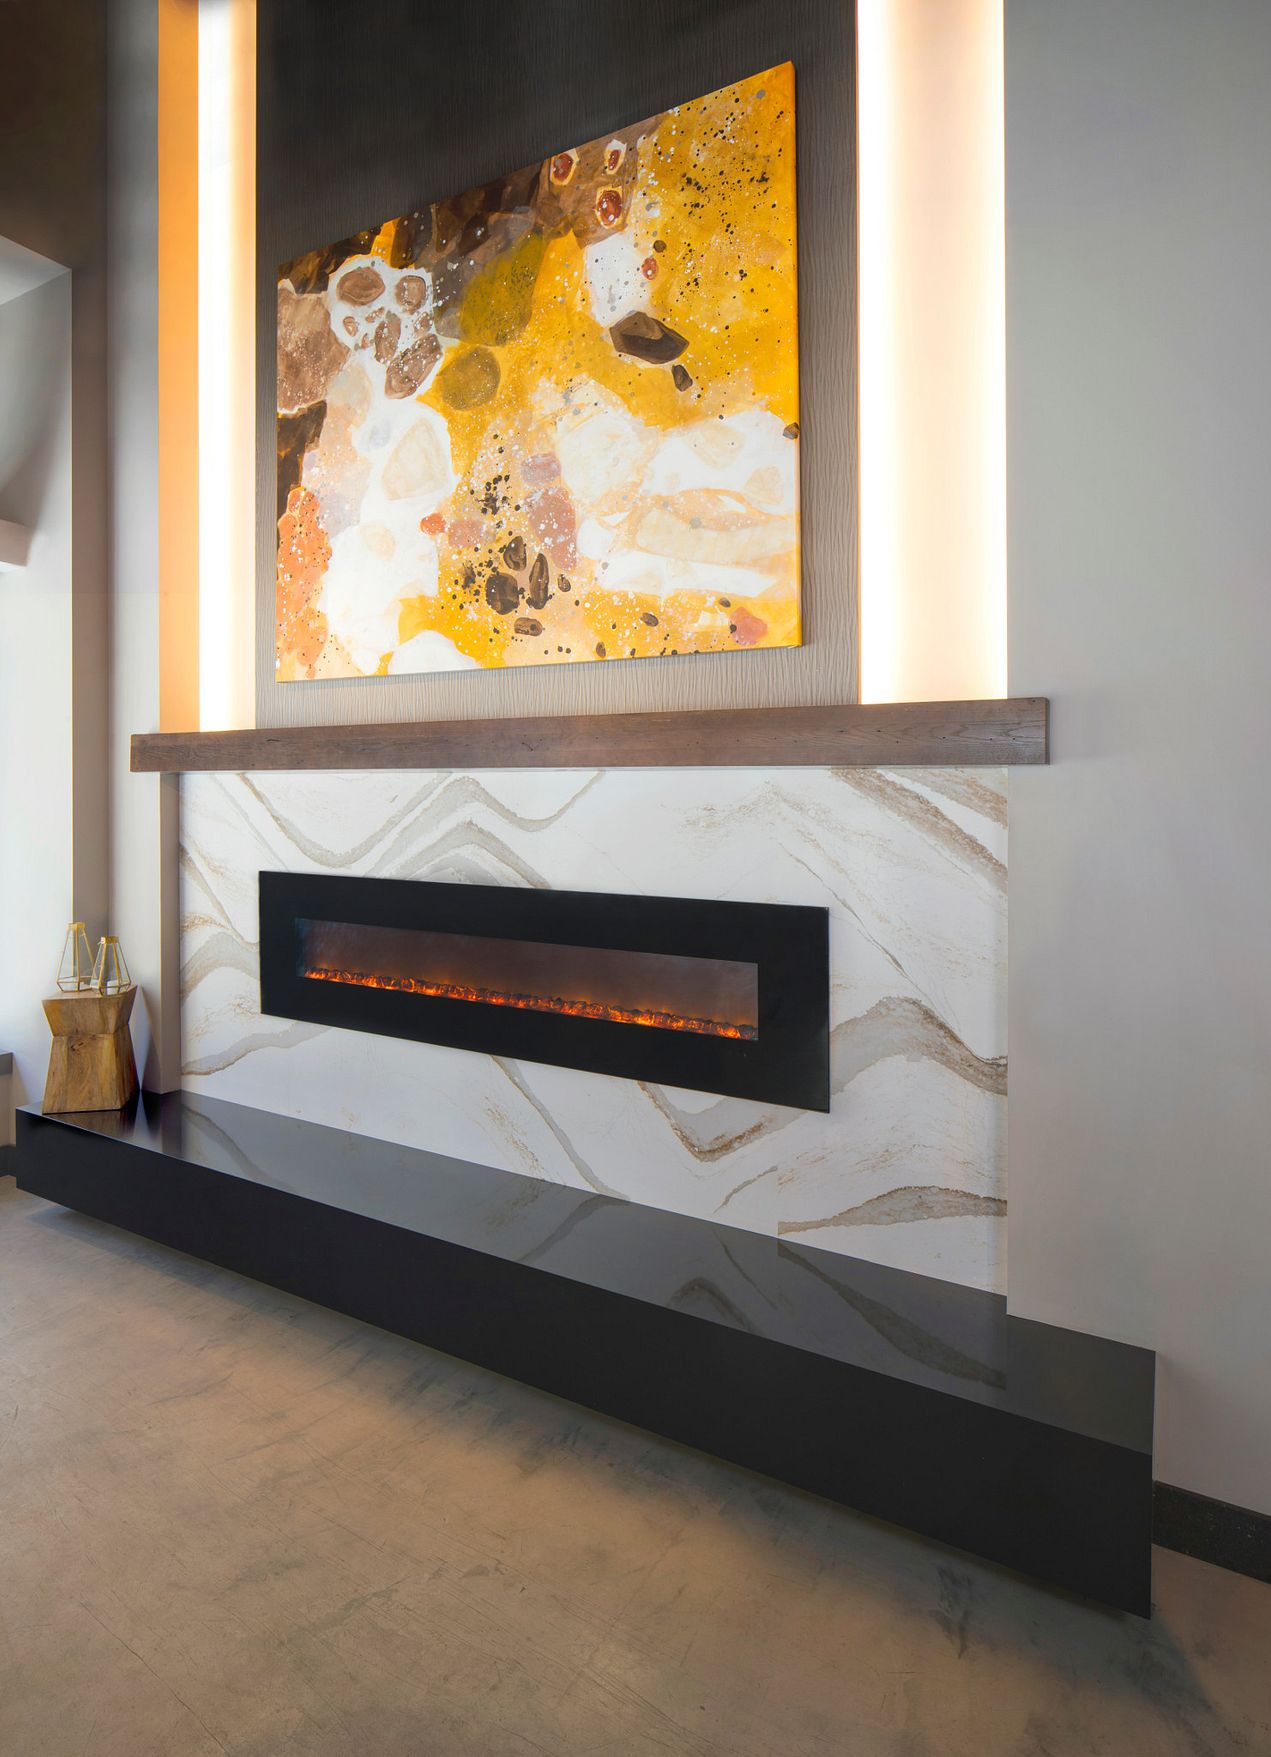 Cambria Brittanicca Gold quartz fireplace surround paired with earth tones in a commercial space.